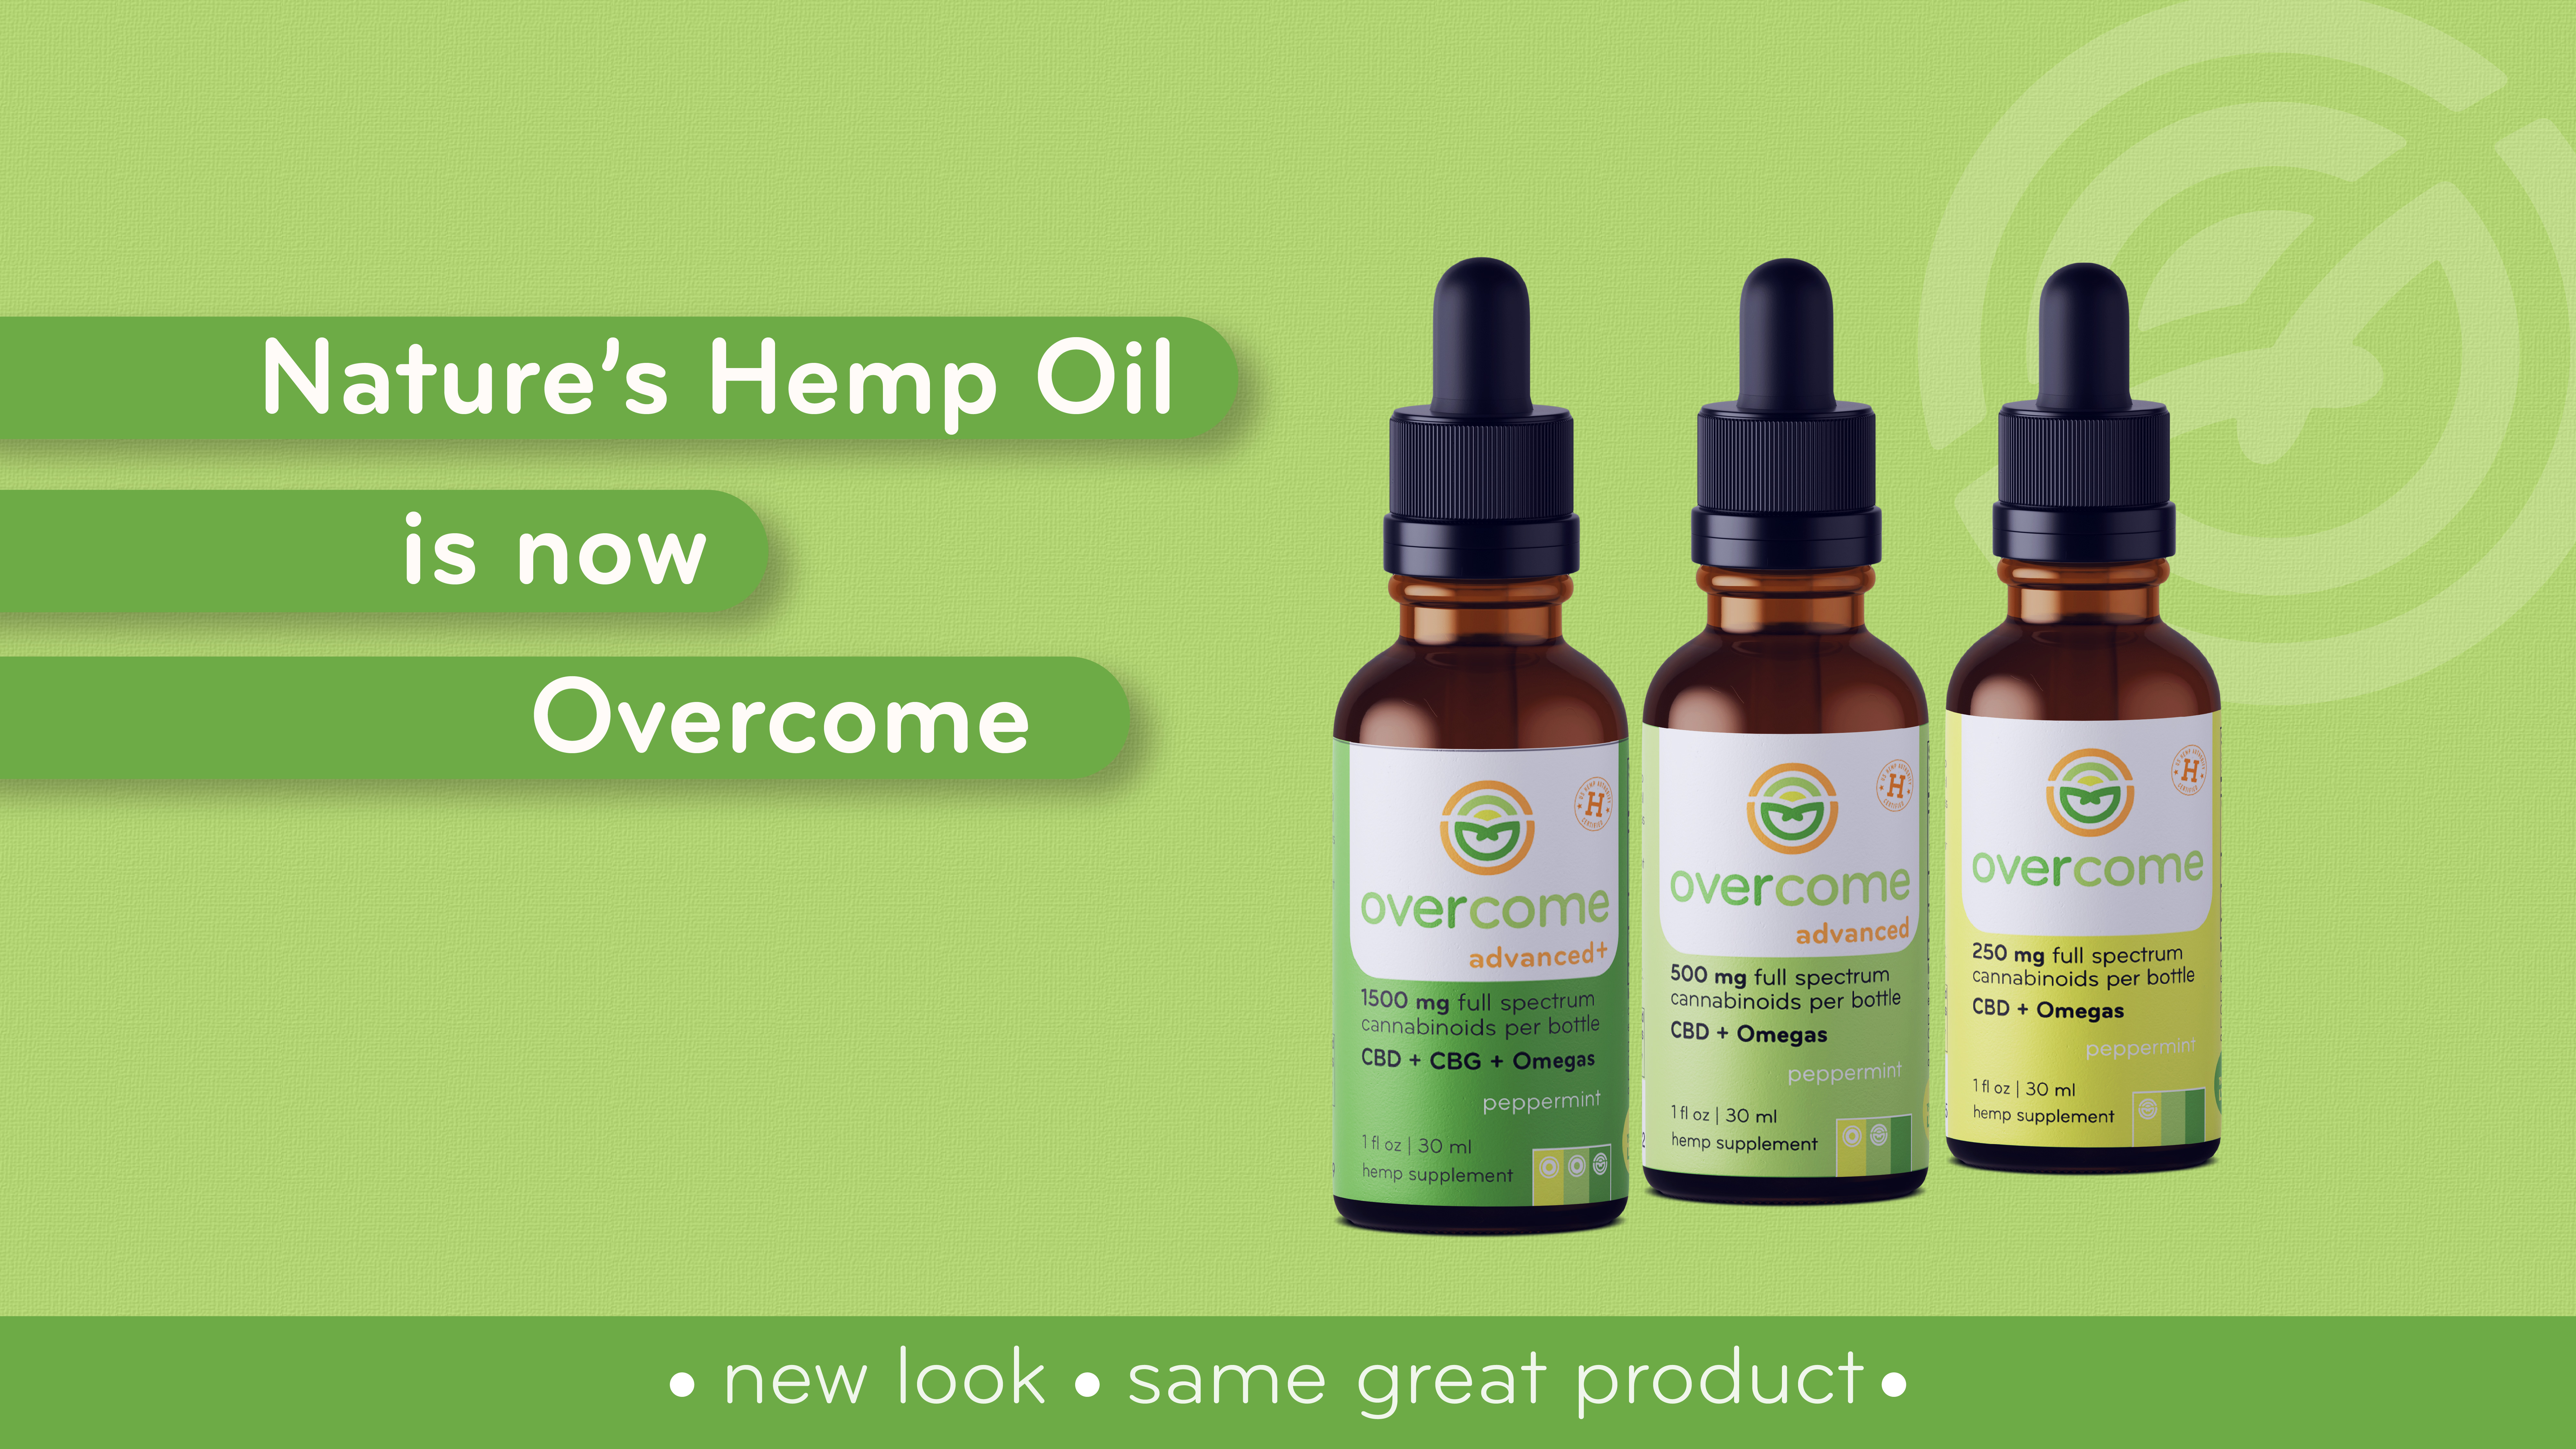 Natures Hemp Oil is now Overcome